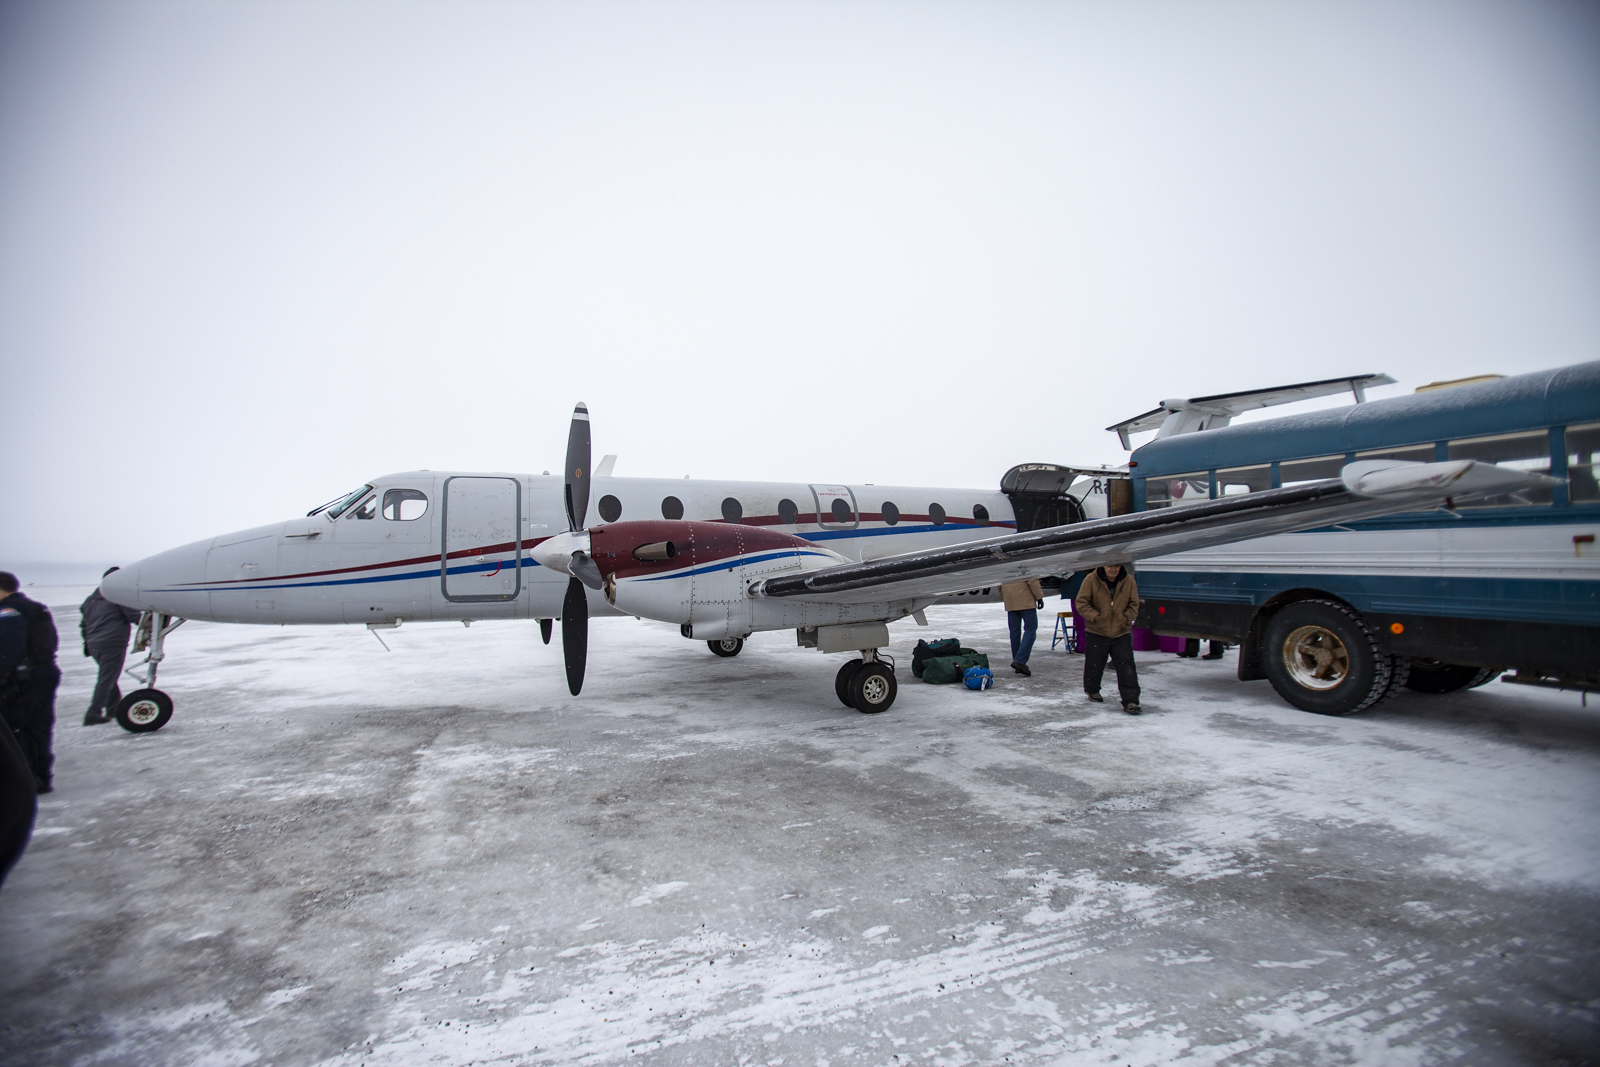 A small bus meets planes at the airstrip in Kaktovik